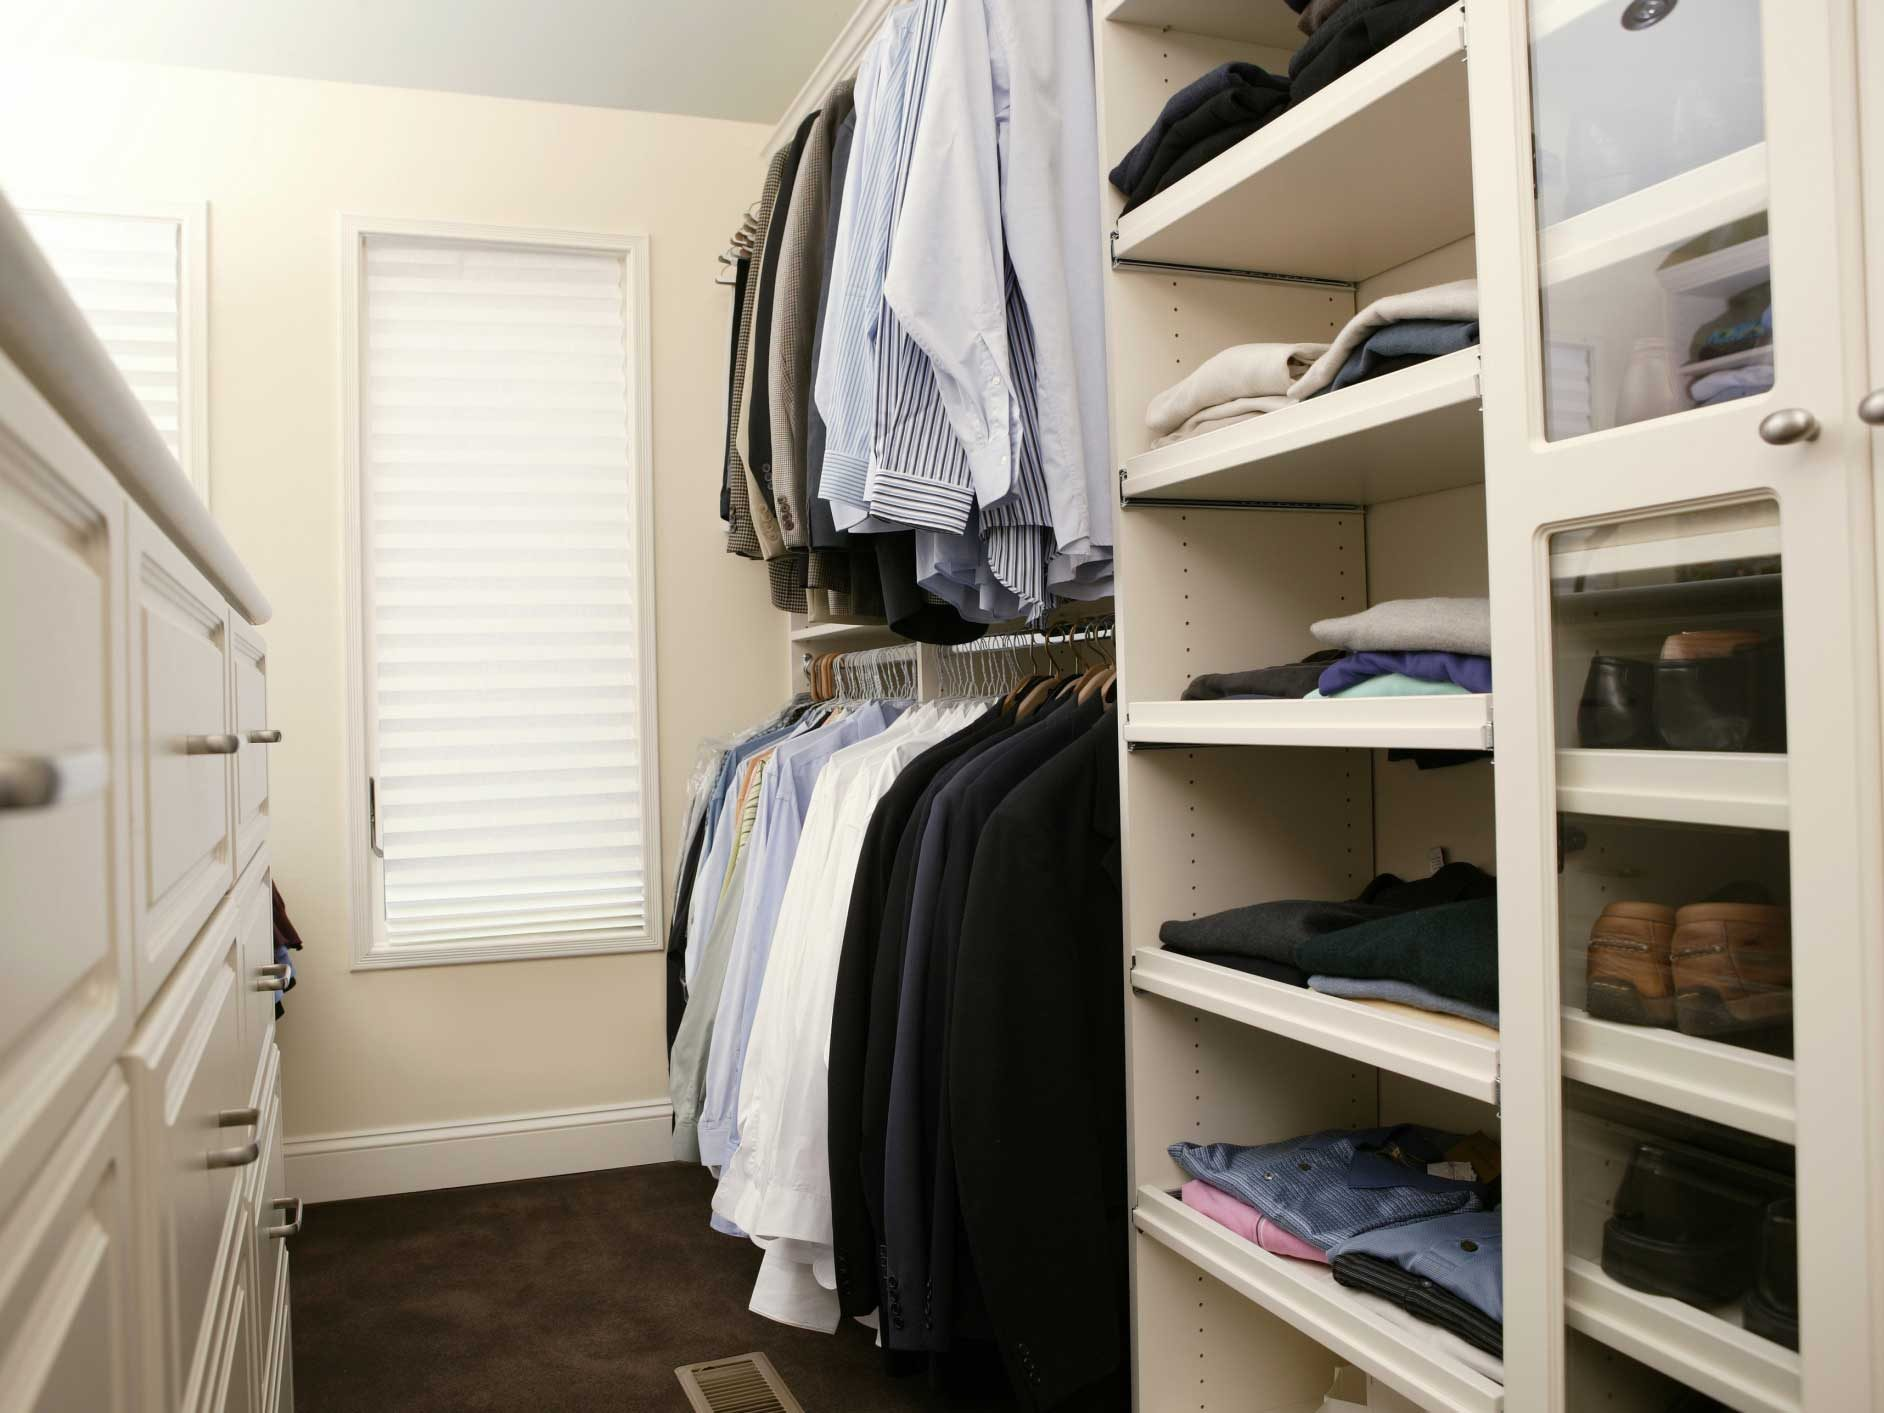 Organizing Hacks for Clothes Closets